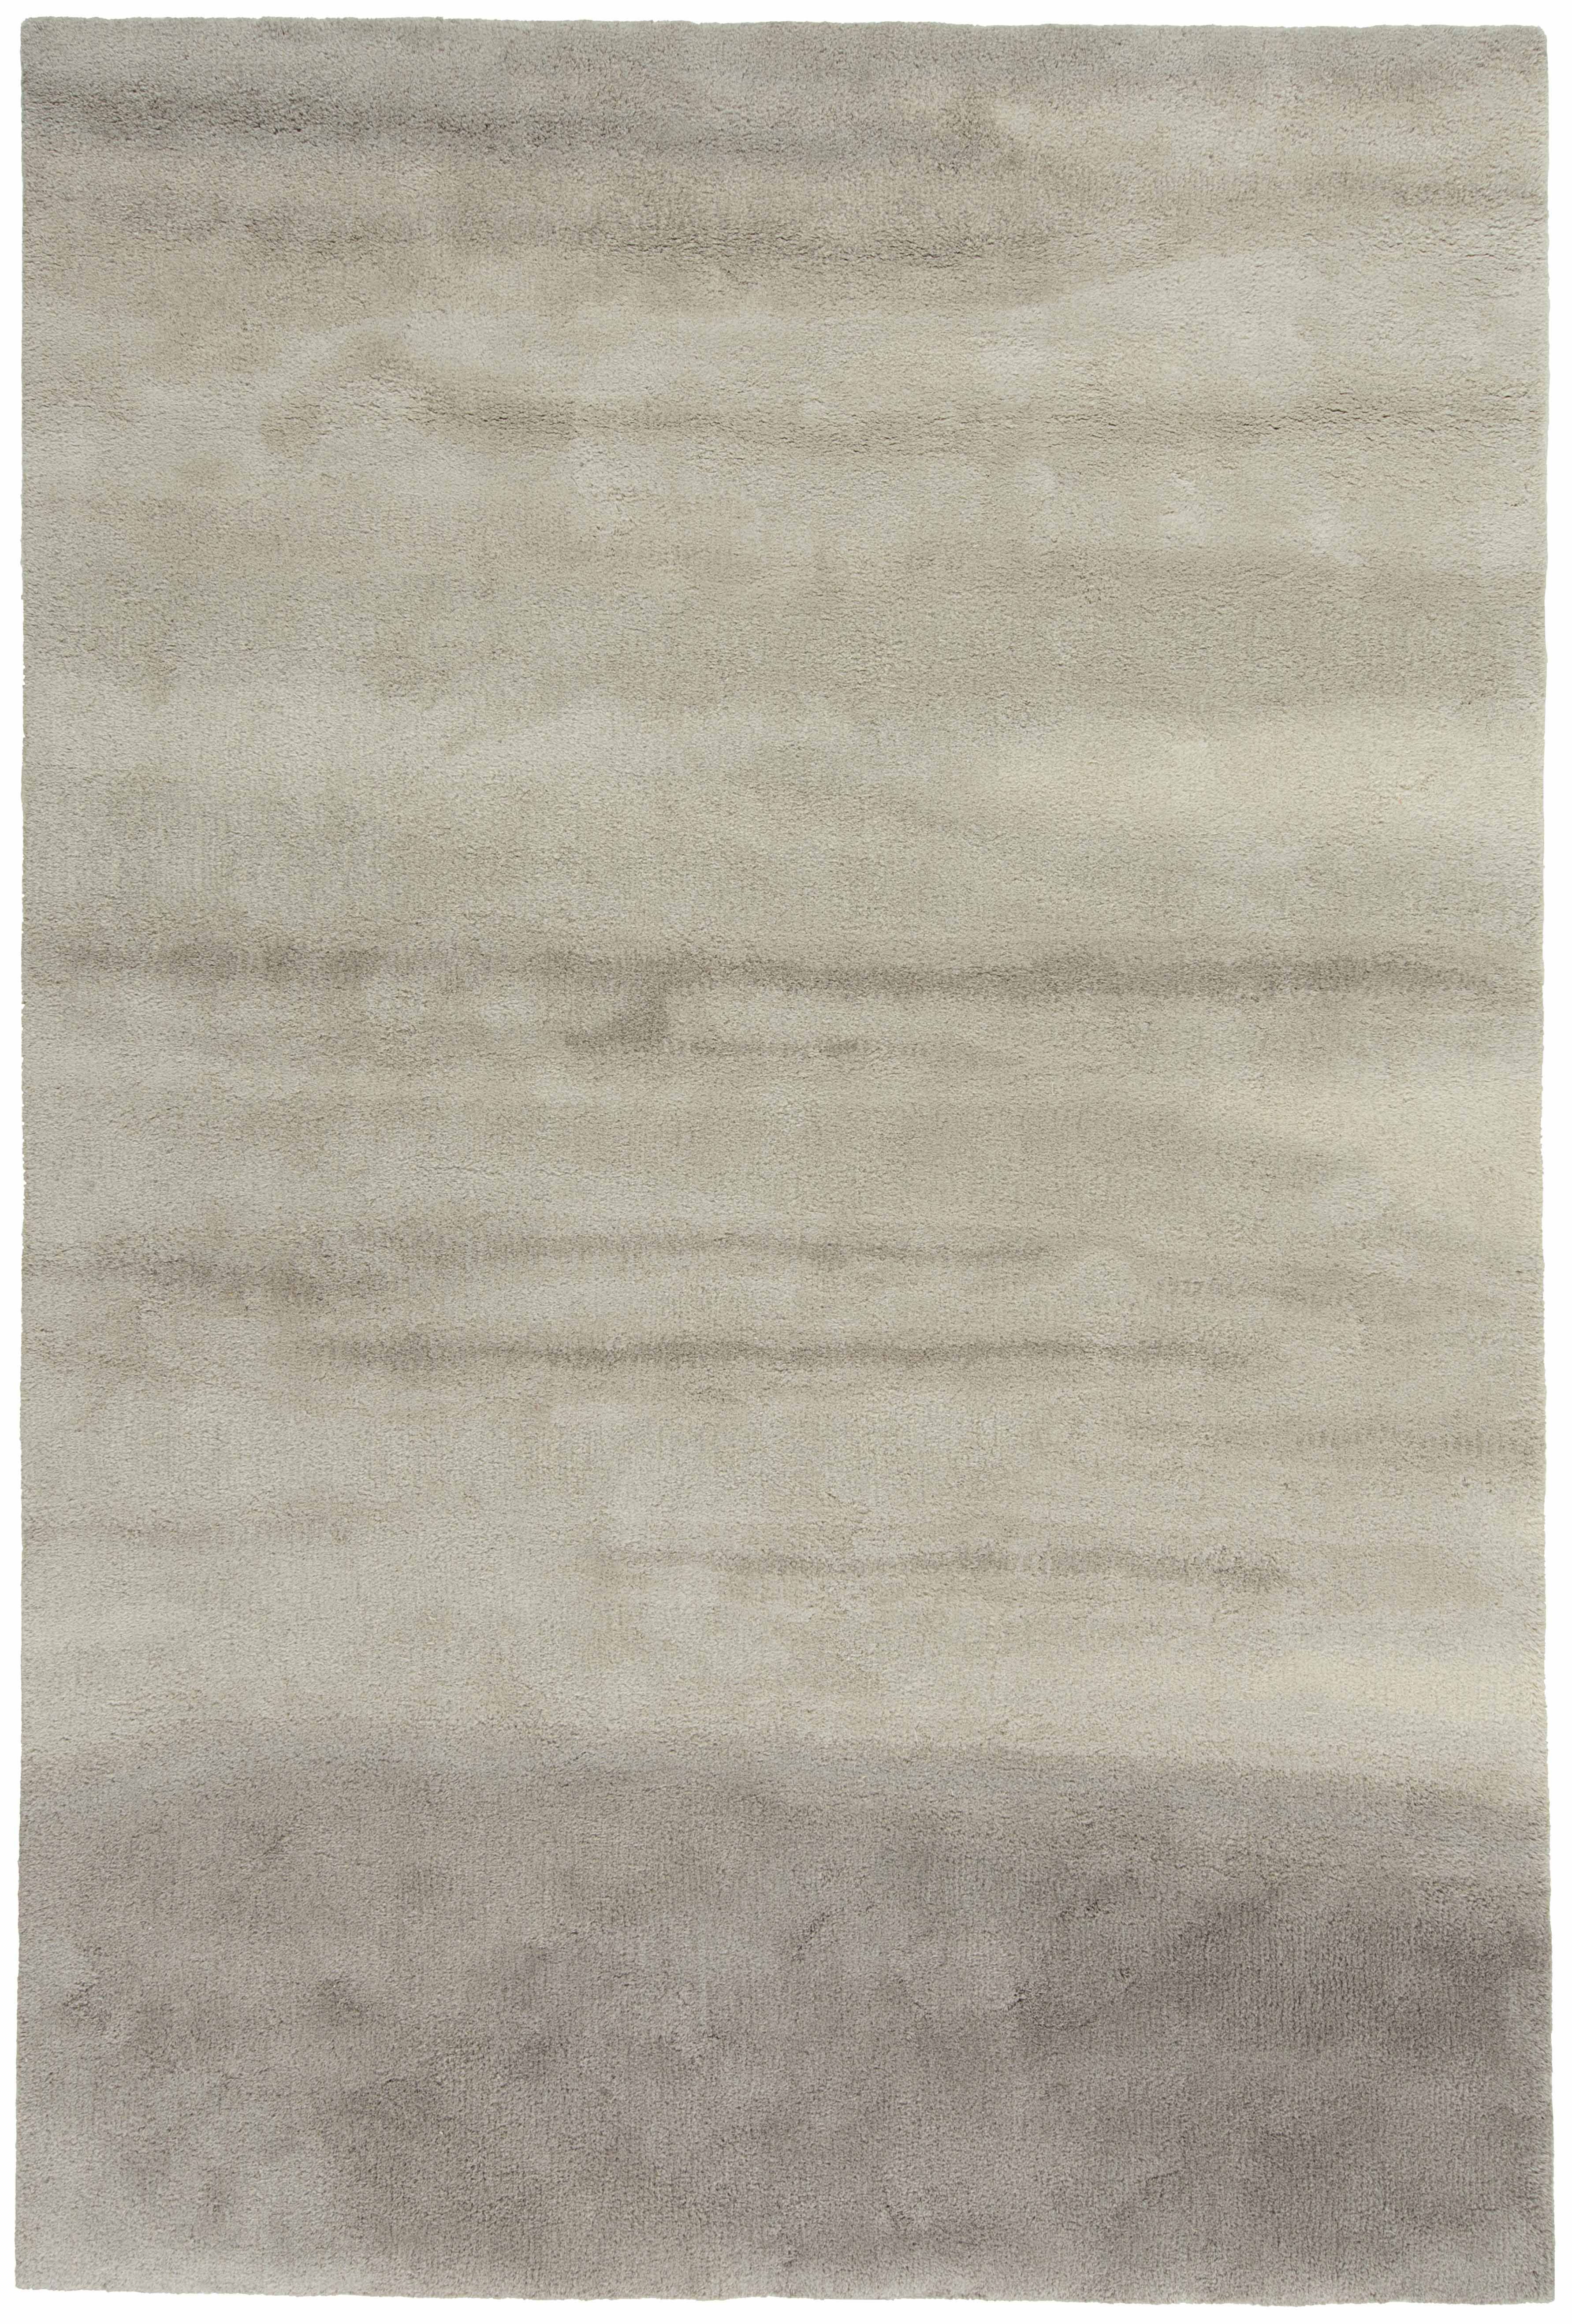 Lagune bo1 antho10gy tai ping antho10gy lagune beige bestof contemporary luxury rug carpet tapis design interiordesign deco art bespoke